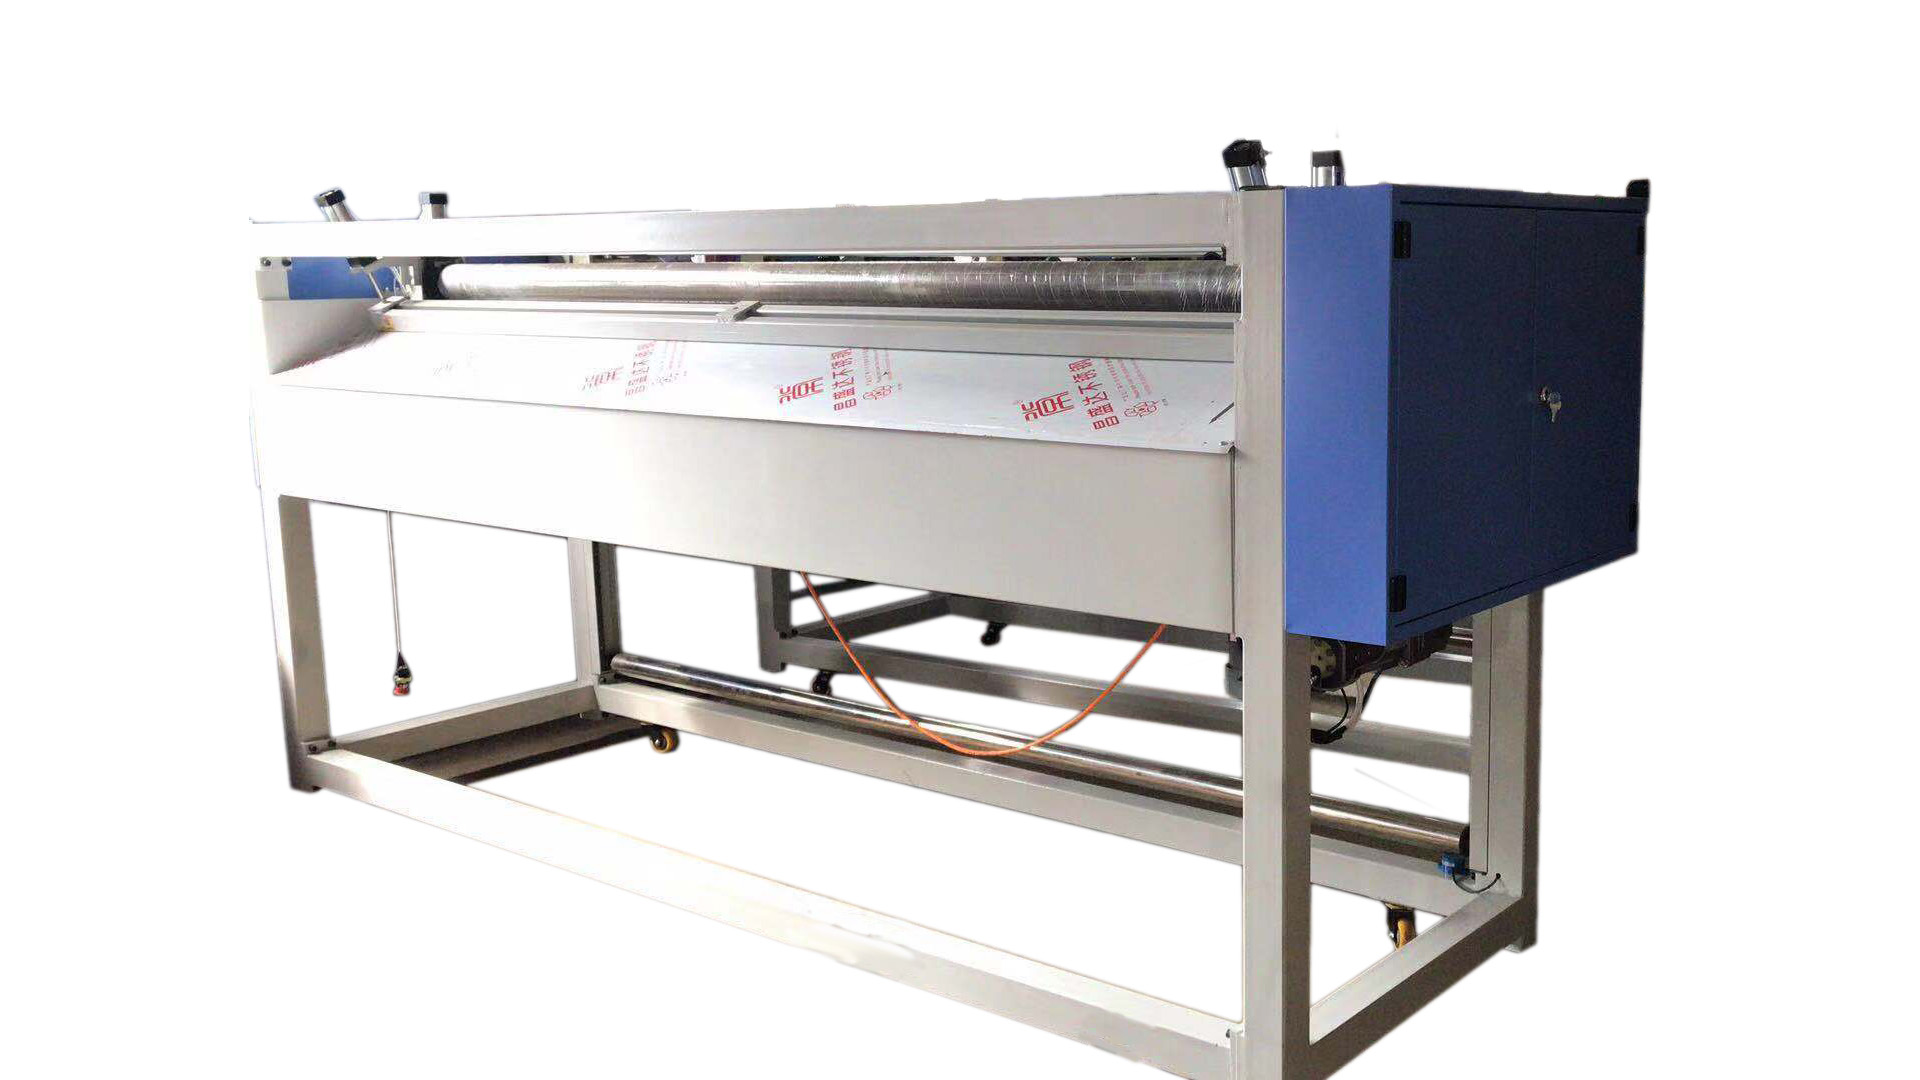 Fabric Binding Machine, Fabric Binding Cutting Machine, Fabric Strip Cutting Machine